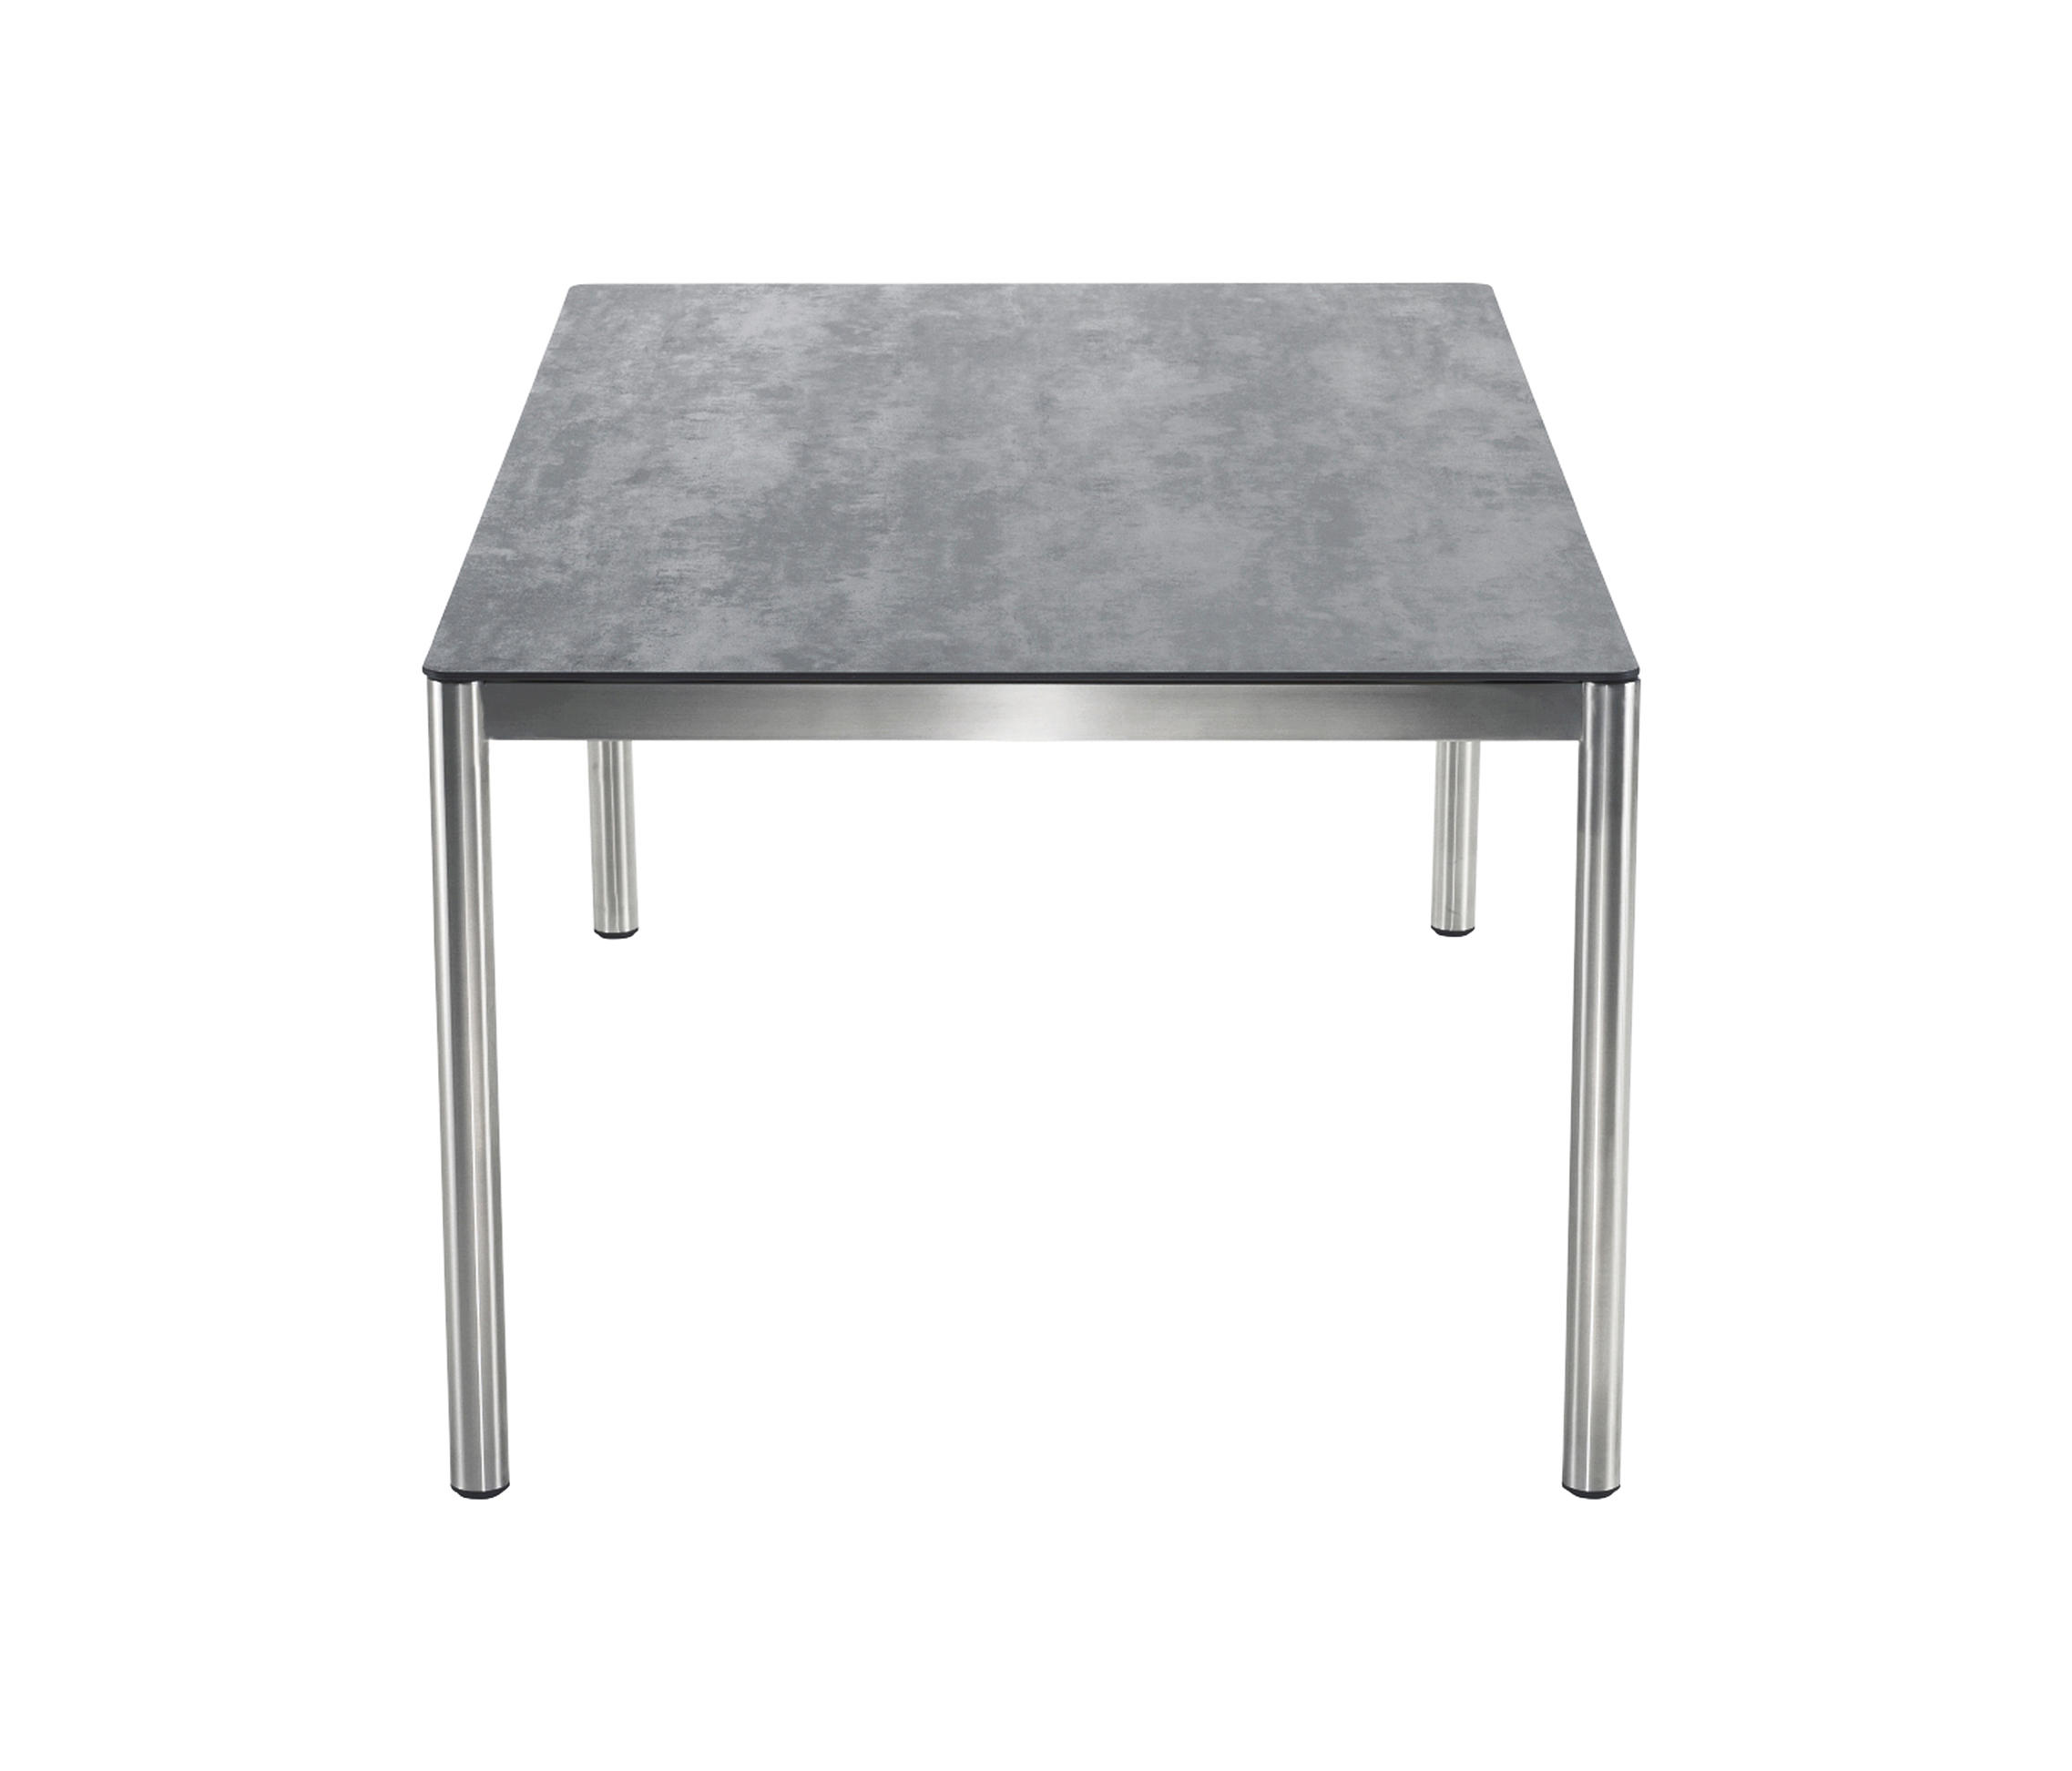 ... Trend Dining Table By Solpuri | Dining Tables ...